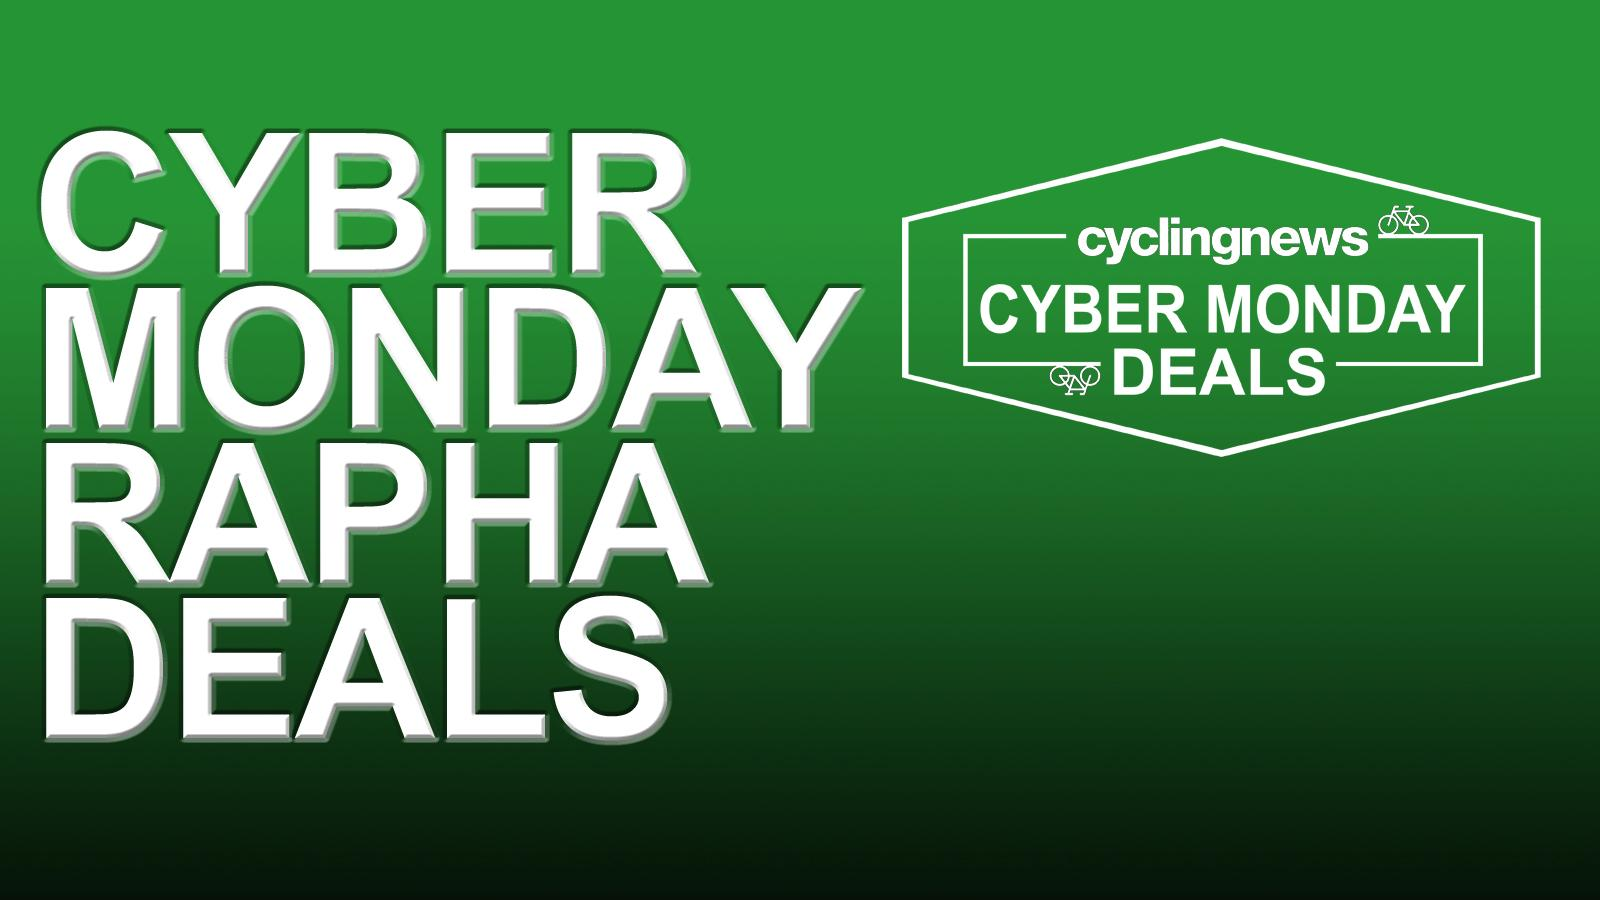 Rapha Cyber Monday: today's best deals on Rapha clothing this Cyber Monday